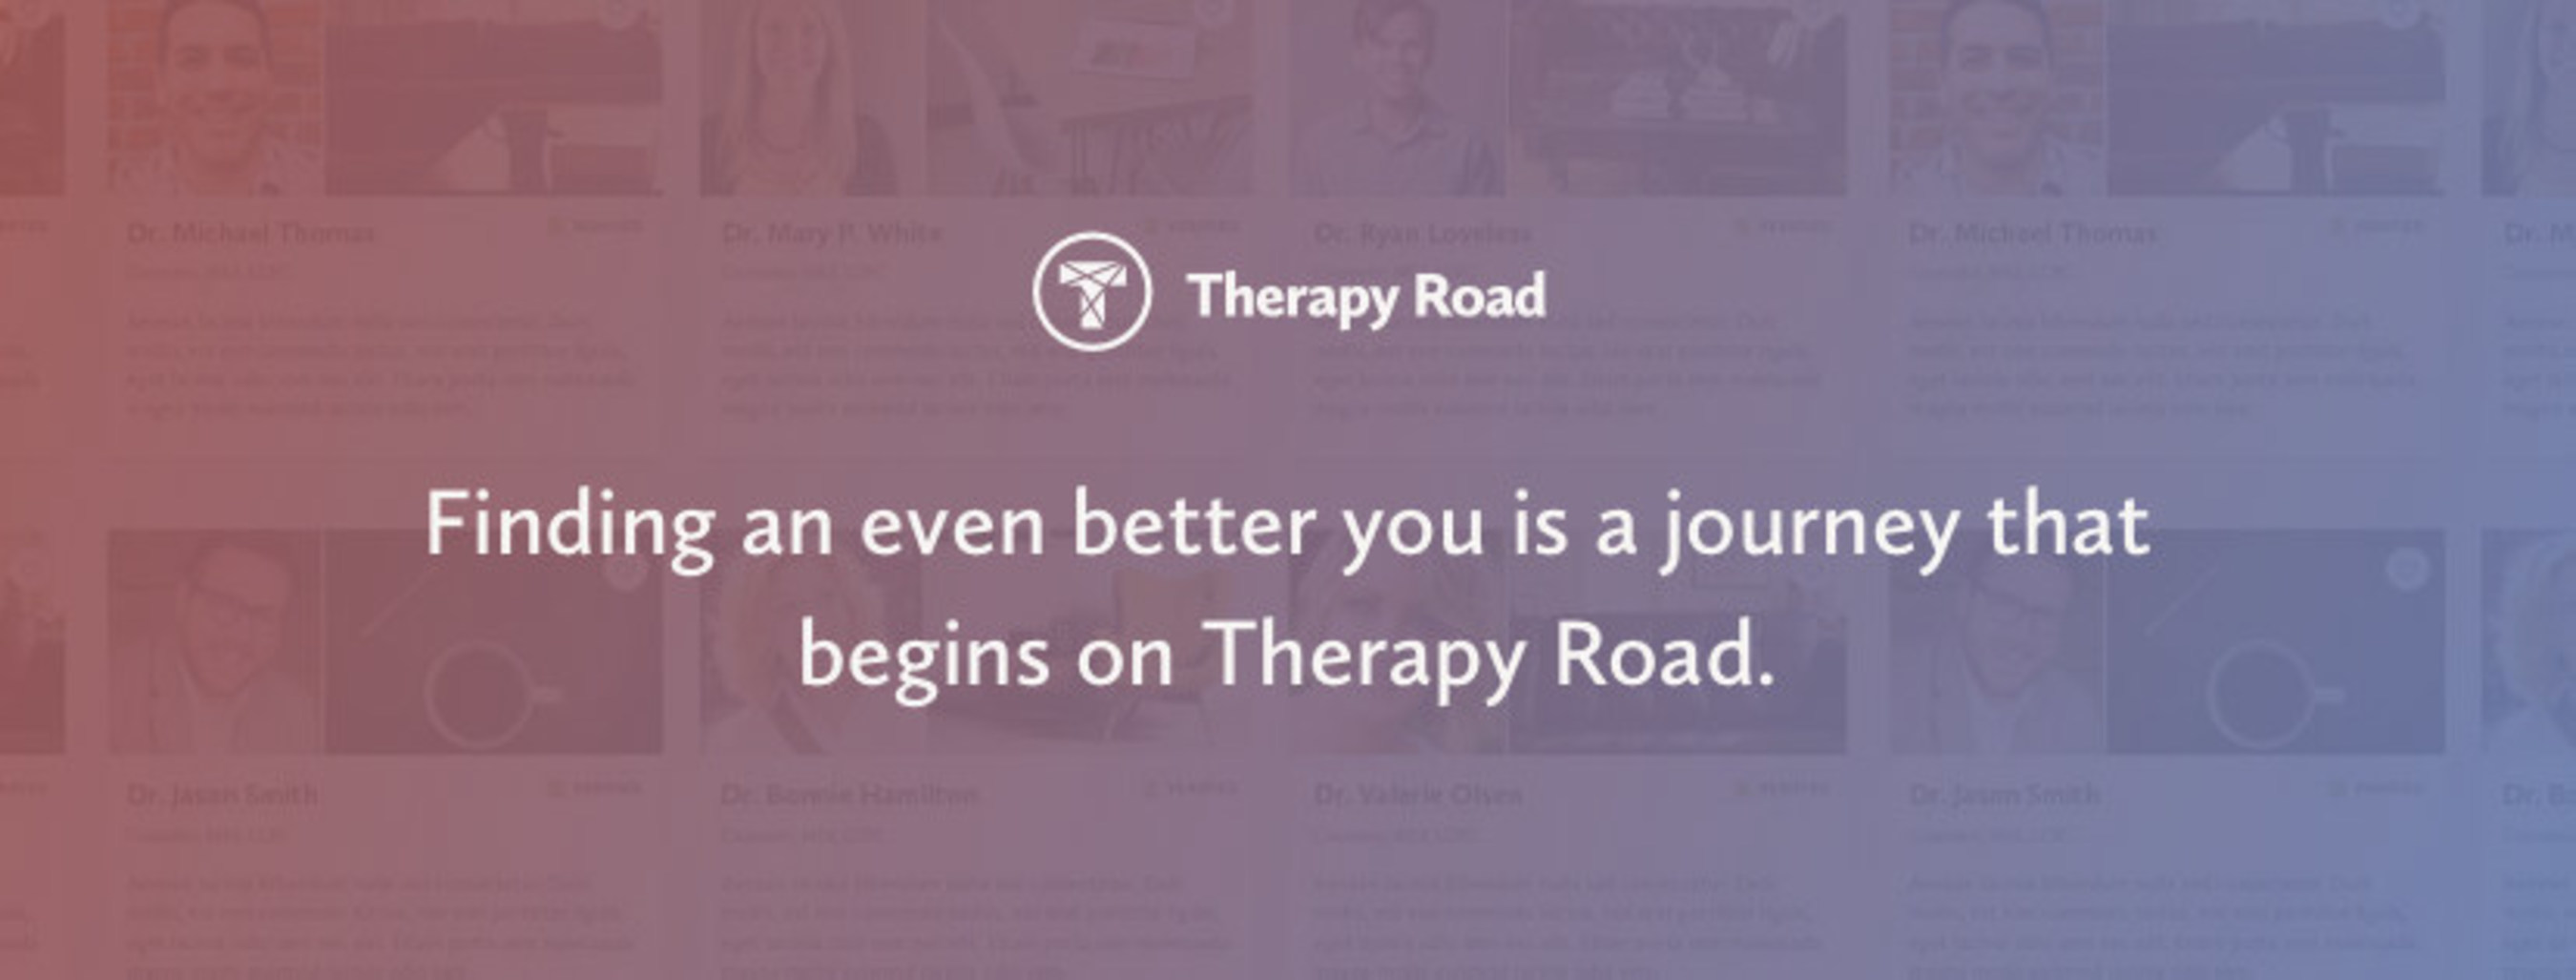 Therapy Road connects people with therapists. Find someone who can help, based on your age, needs and insurance coverage at therapyroad.com.